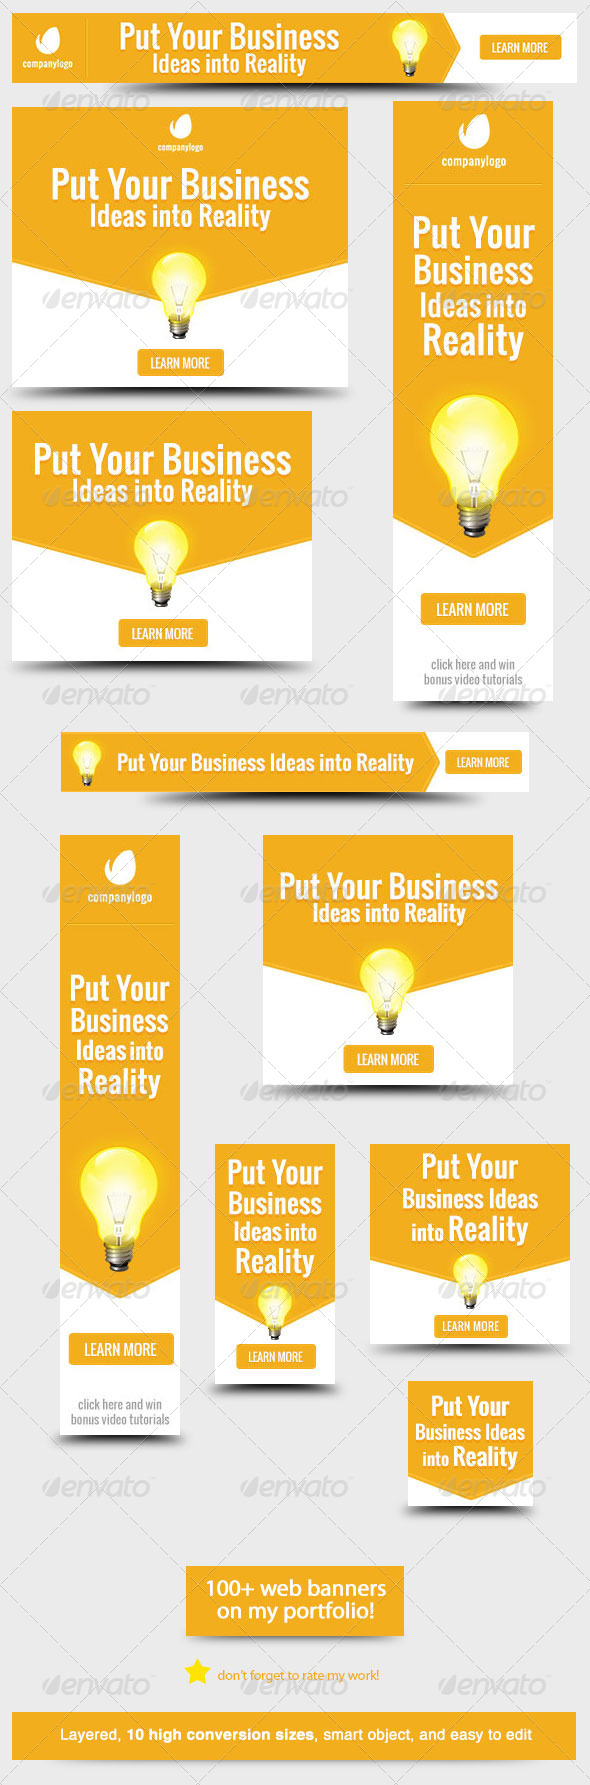 Business Idea Web Banner Design